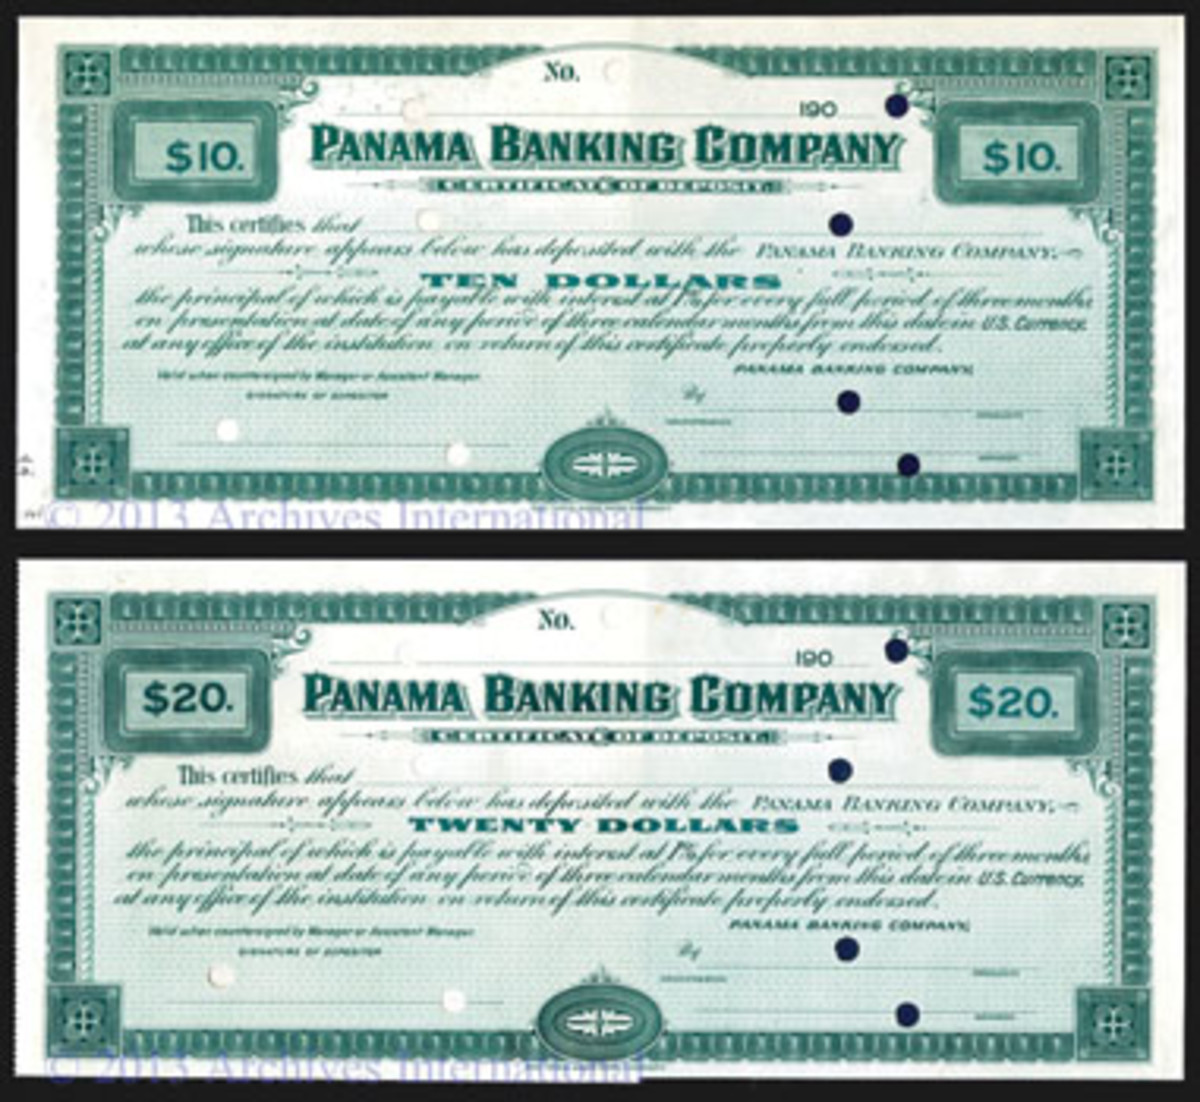 Two of the four Panama Banking Co. Certificates of Deposit for $10, $20, $50 and $100 payable in U.S. dollars able to serve as circulating currency in the Canal Zone. The four come PMG graded: Gem Uncirculated 66 EPQ, Choice About Uncirculated 58, Choice Uncirculated 64, and Choice Uncirculated 64, respectively.